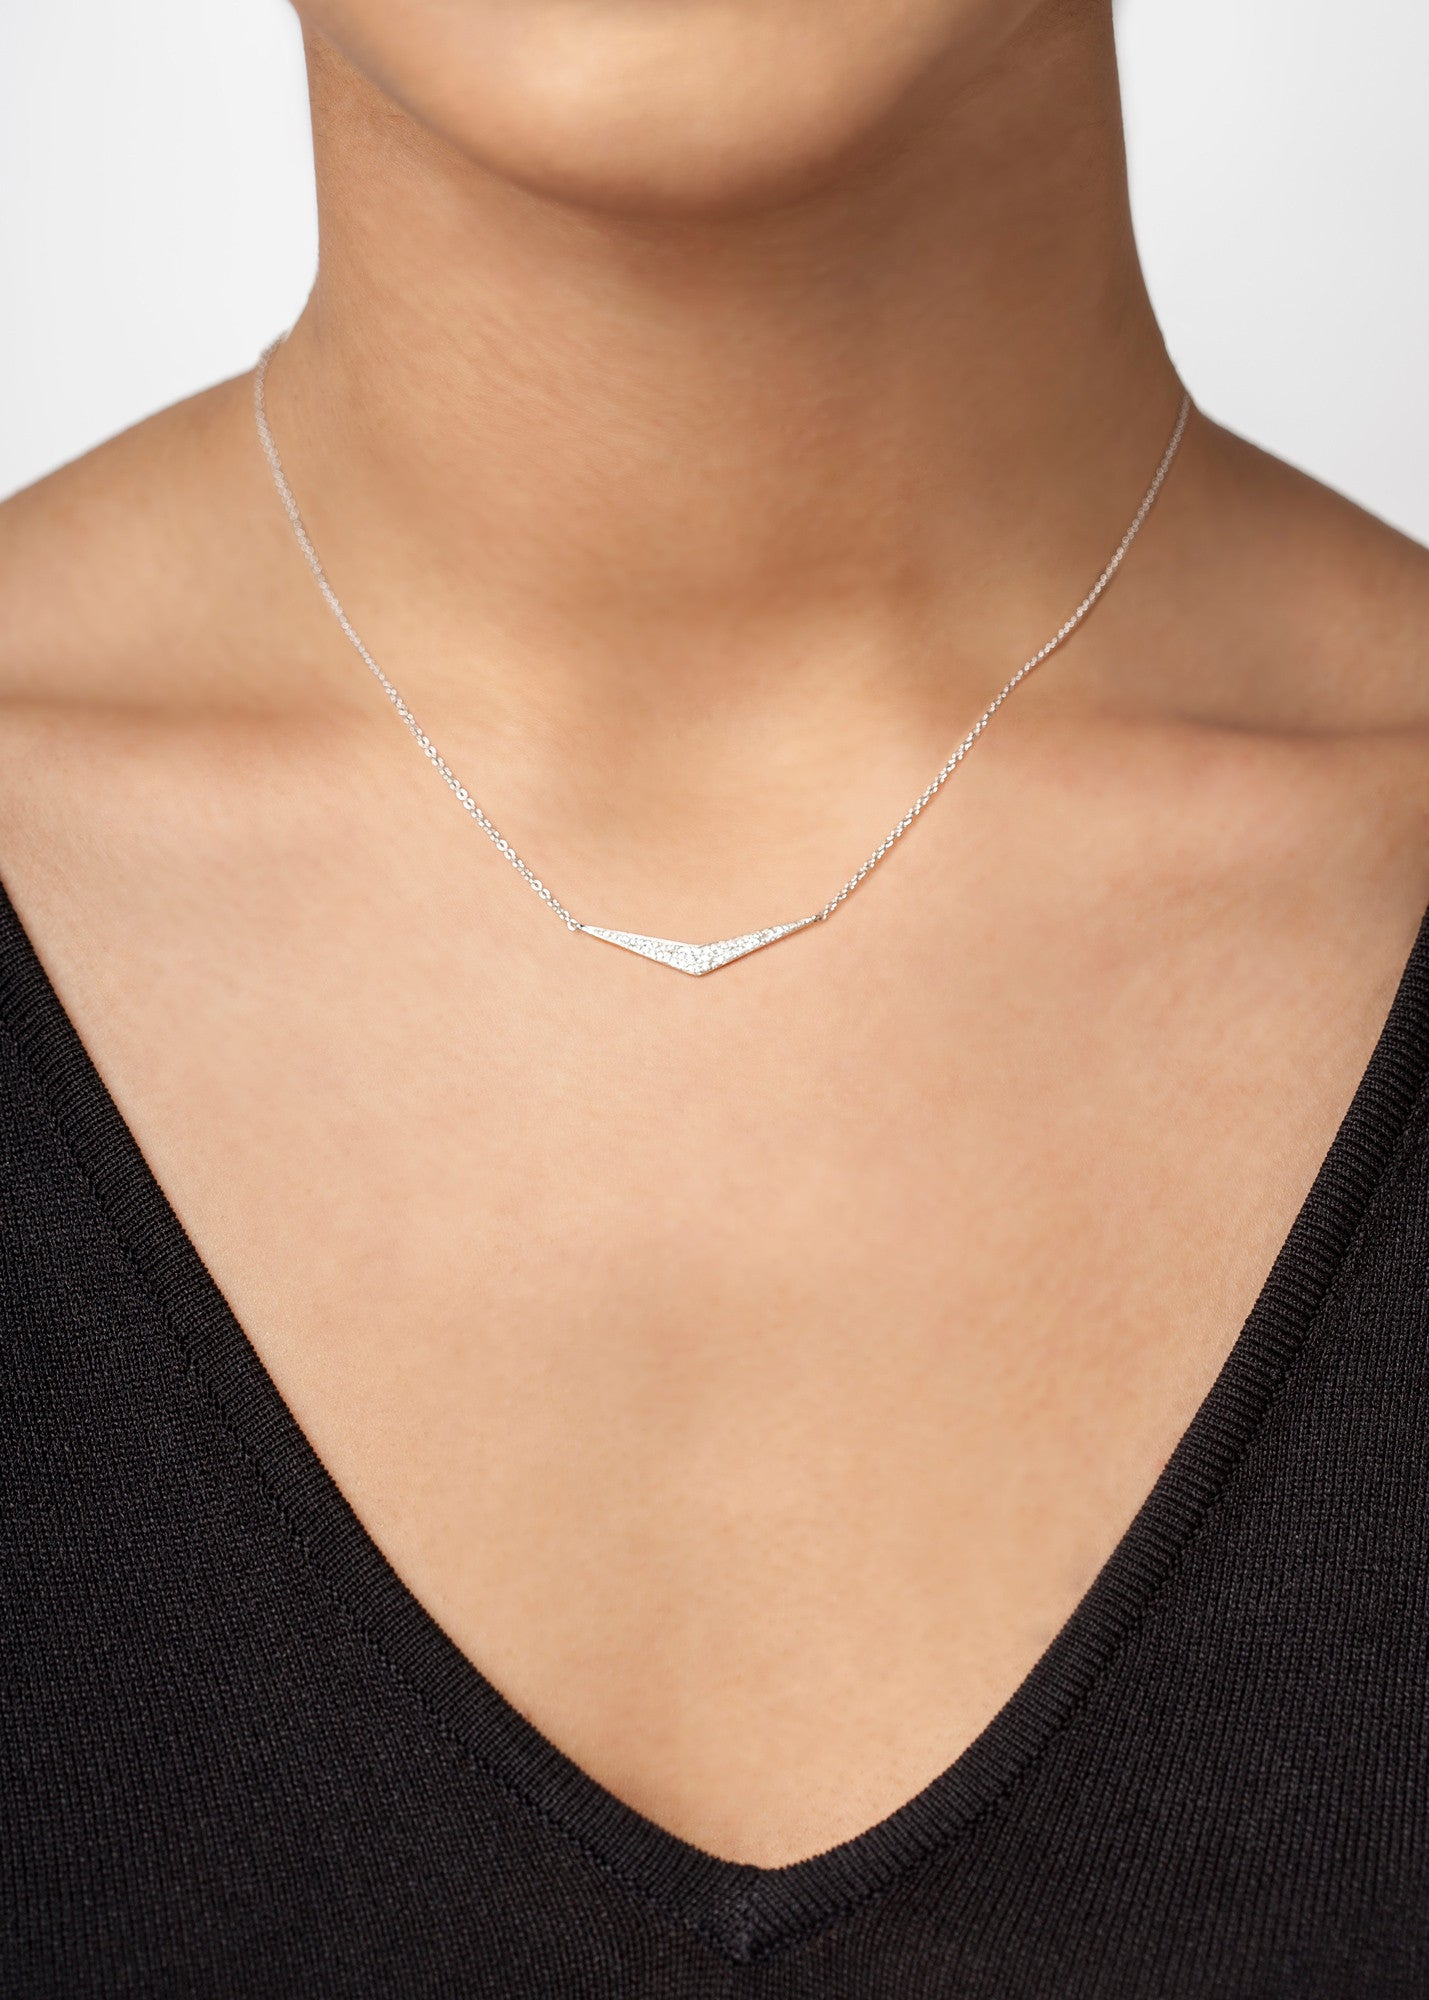 Pavé Wide 'V' Diamond Necklace--50% OFF--ONLY 1 LEFT!